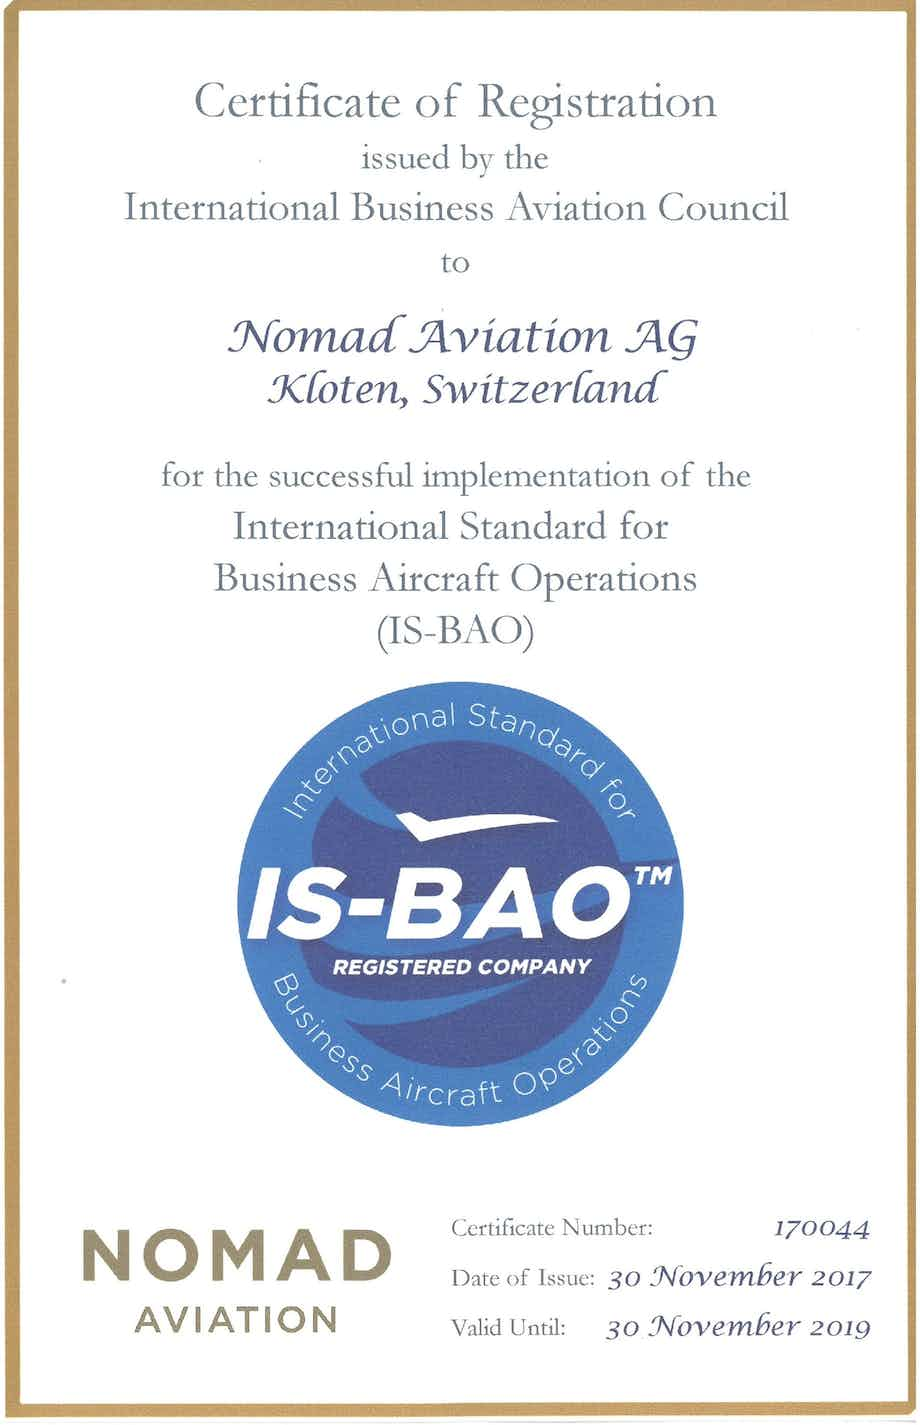 Nomad Aviation receives IS-BAO Registration Certificate